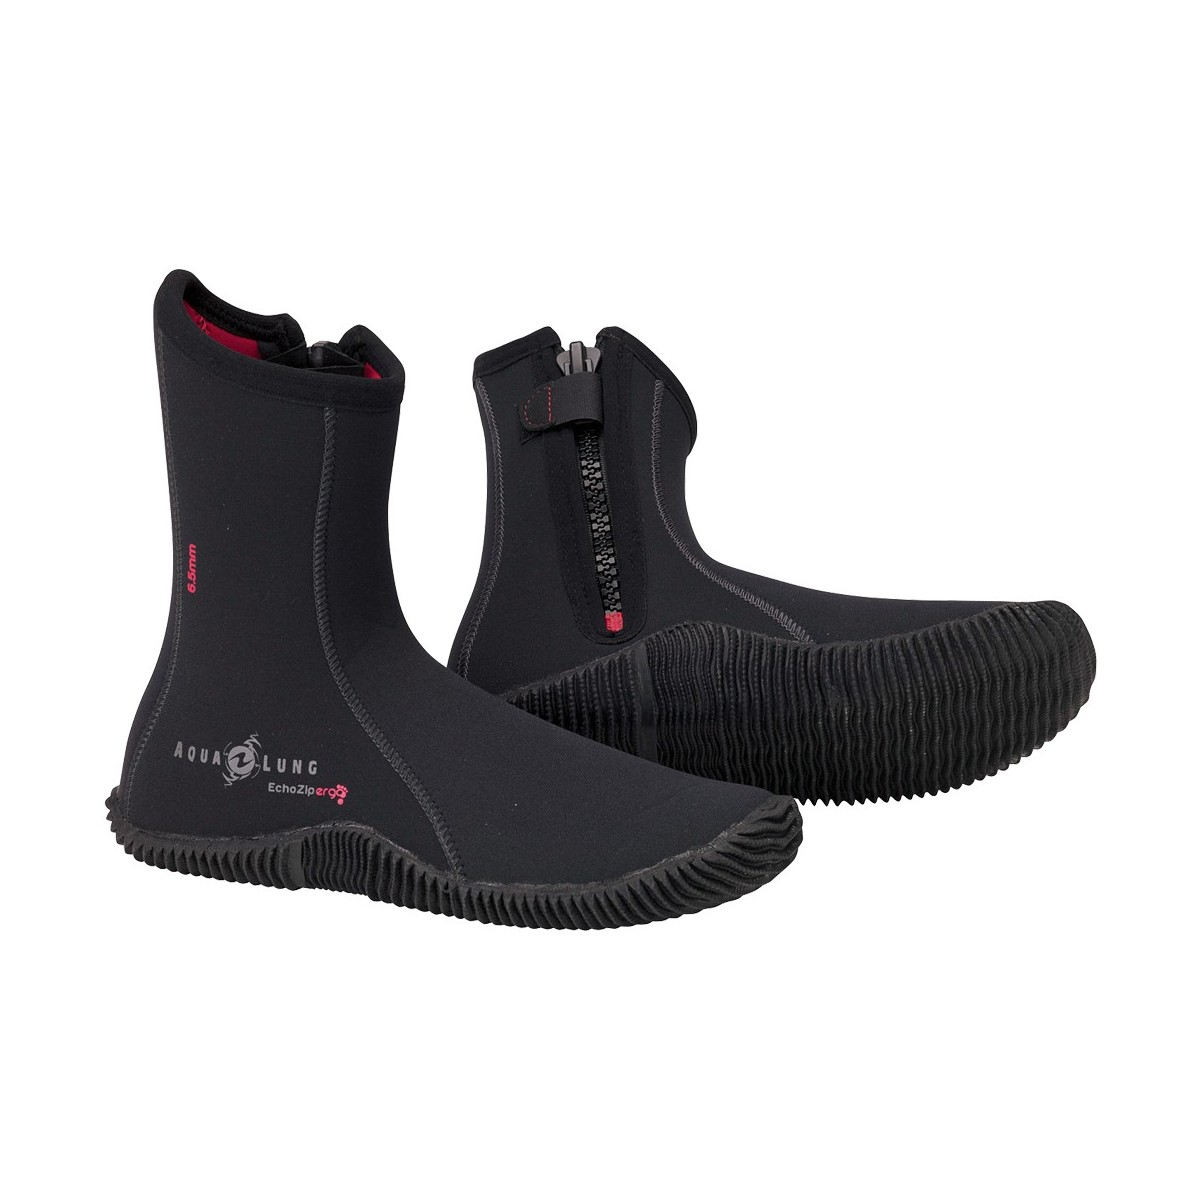 Aqua Lung Men's 5mm Echozip Ergo Boot